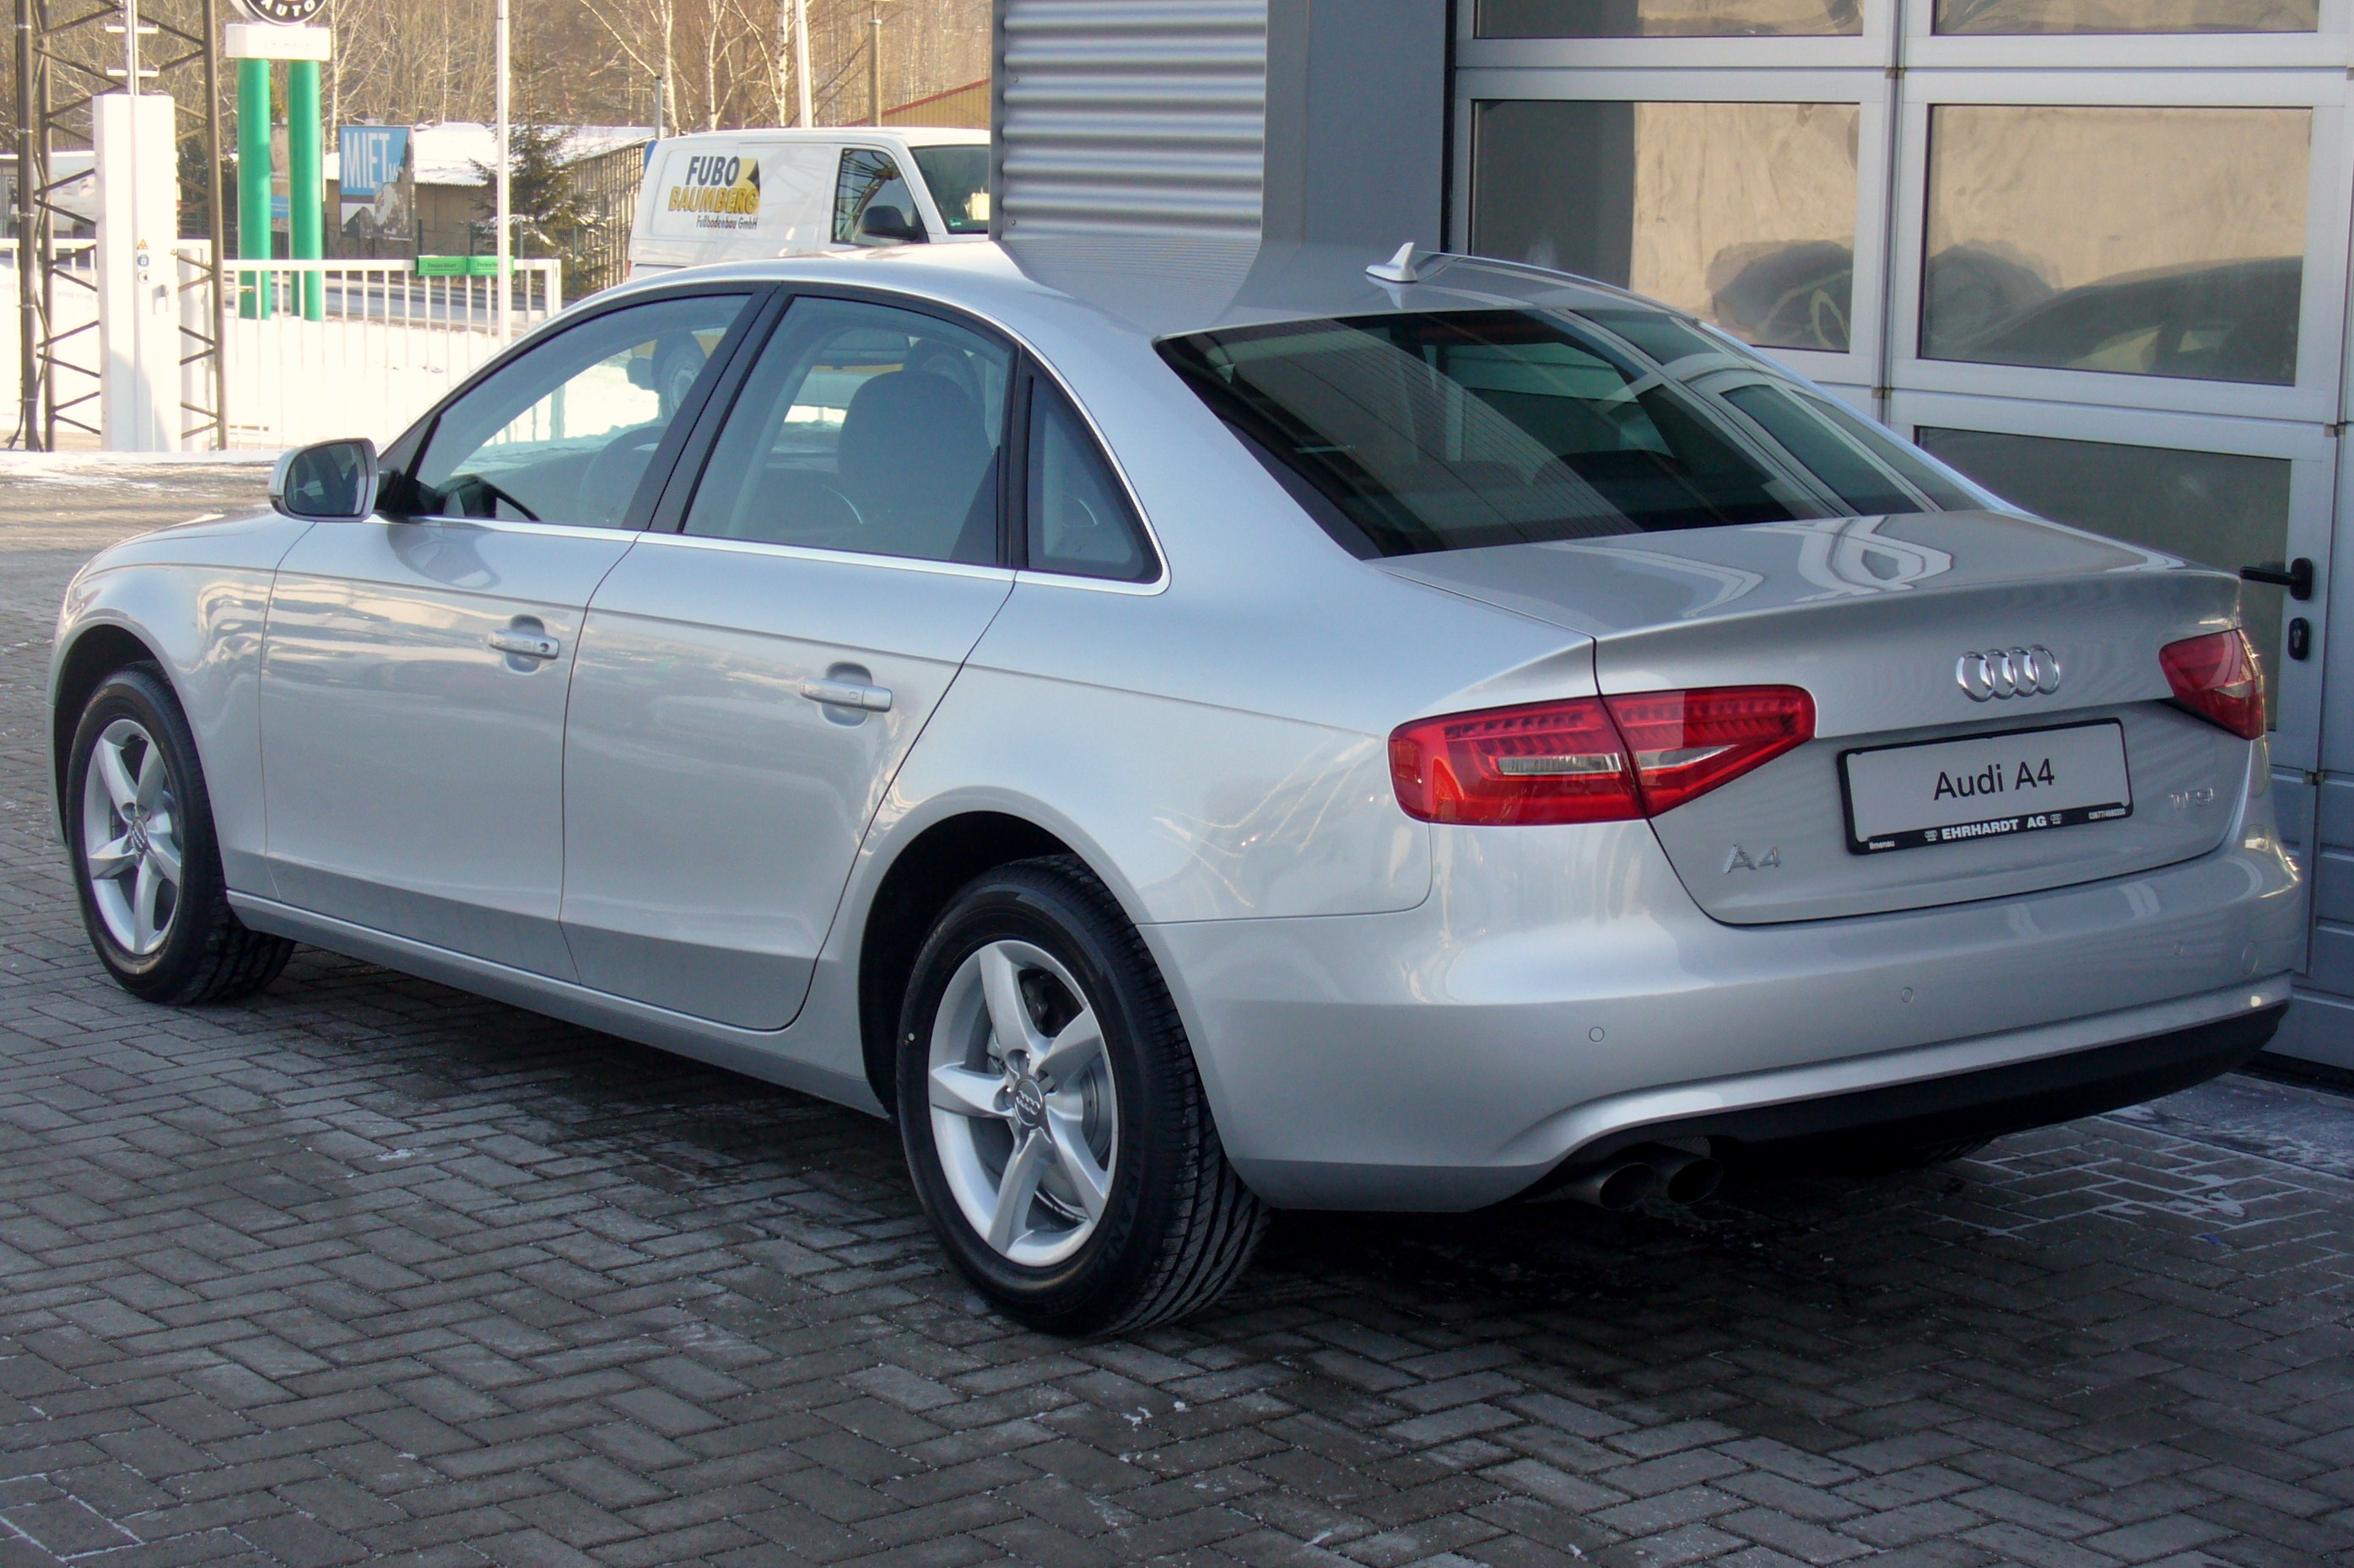 Audi a4 b8 facelift limousine ambiente 1 8 tfsi multitronic eissilber heck jpg